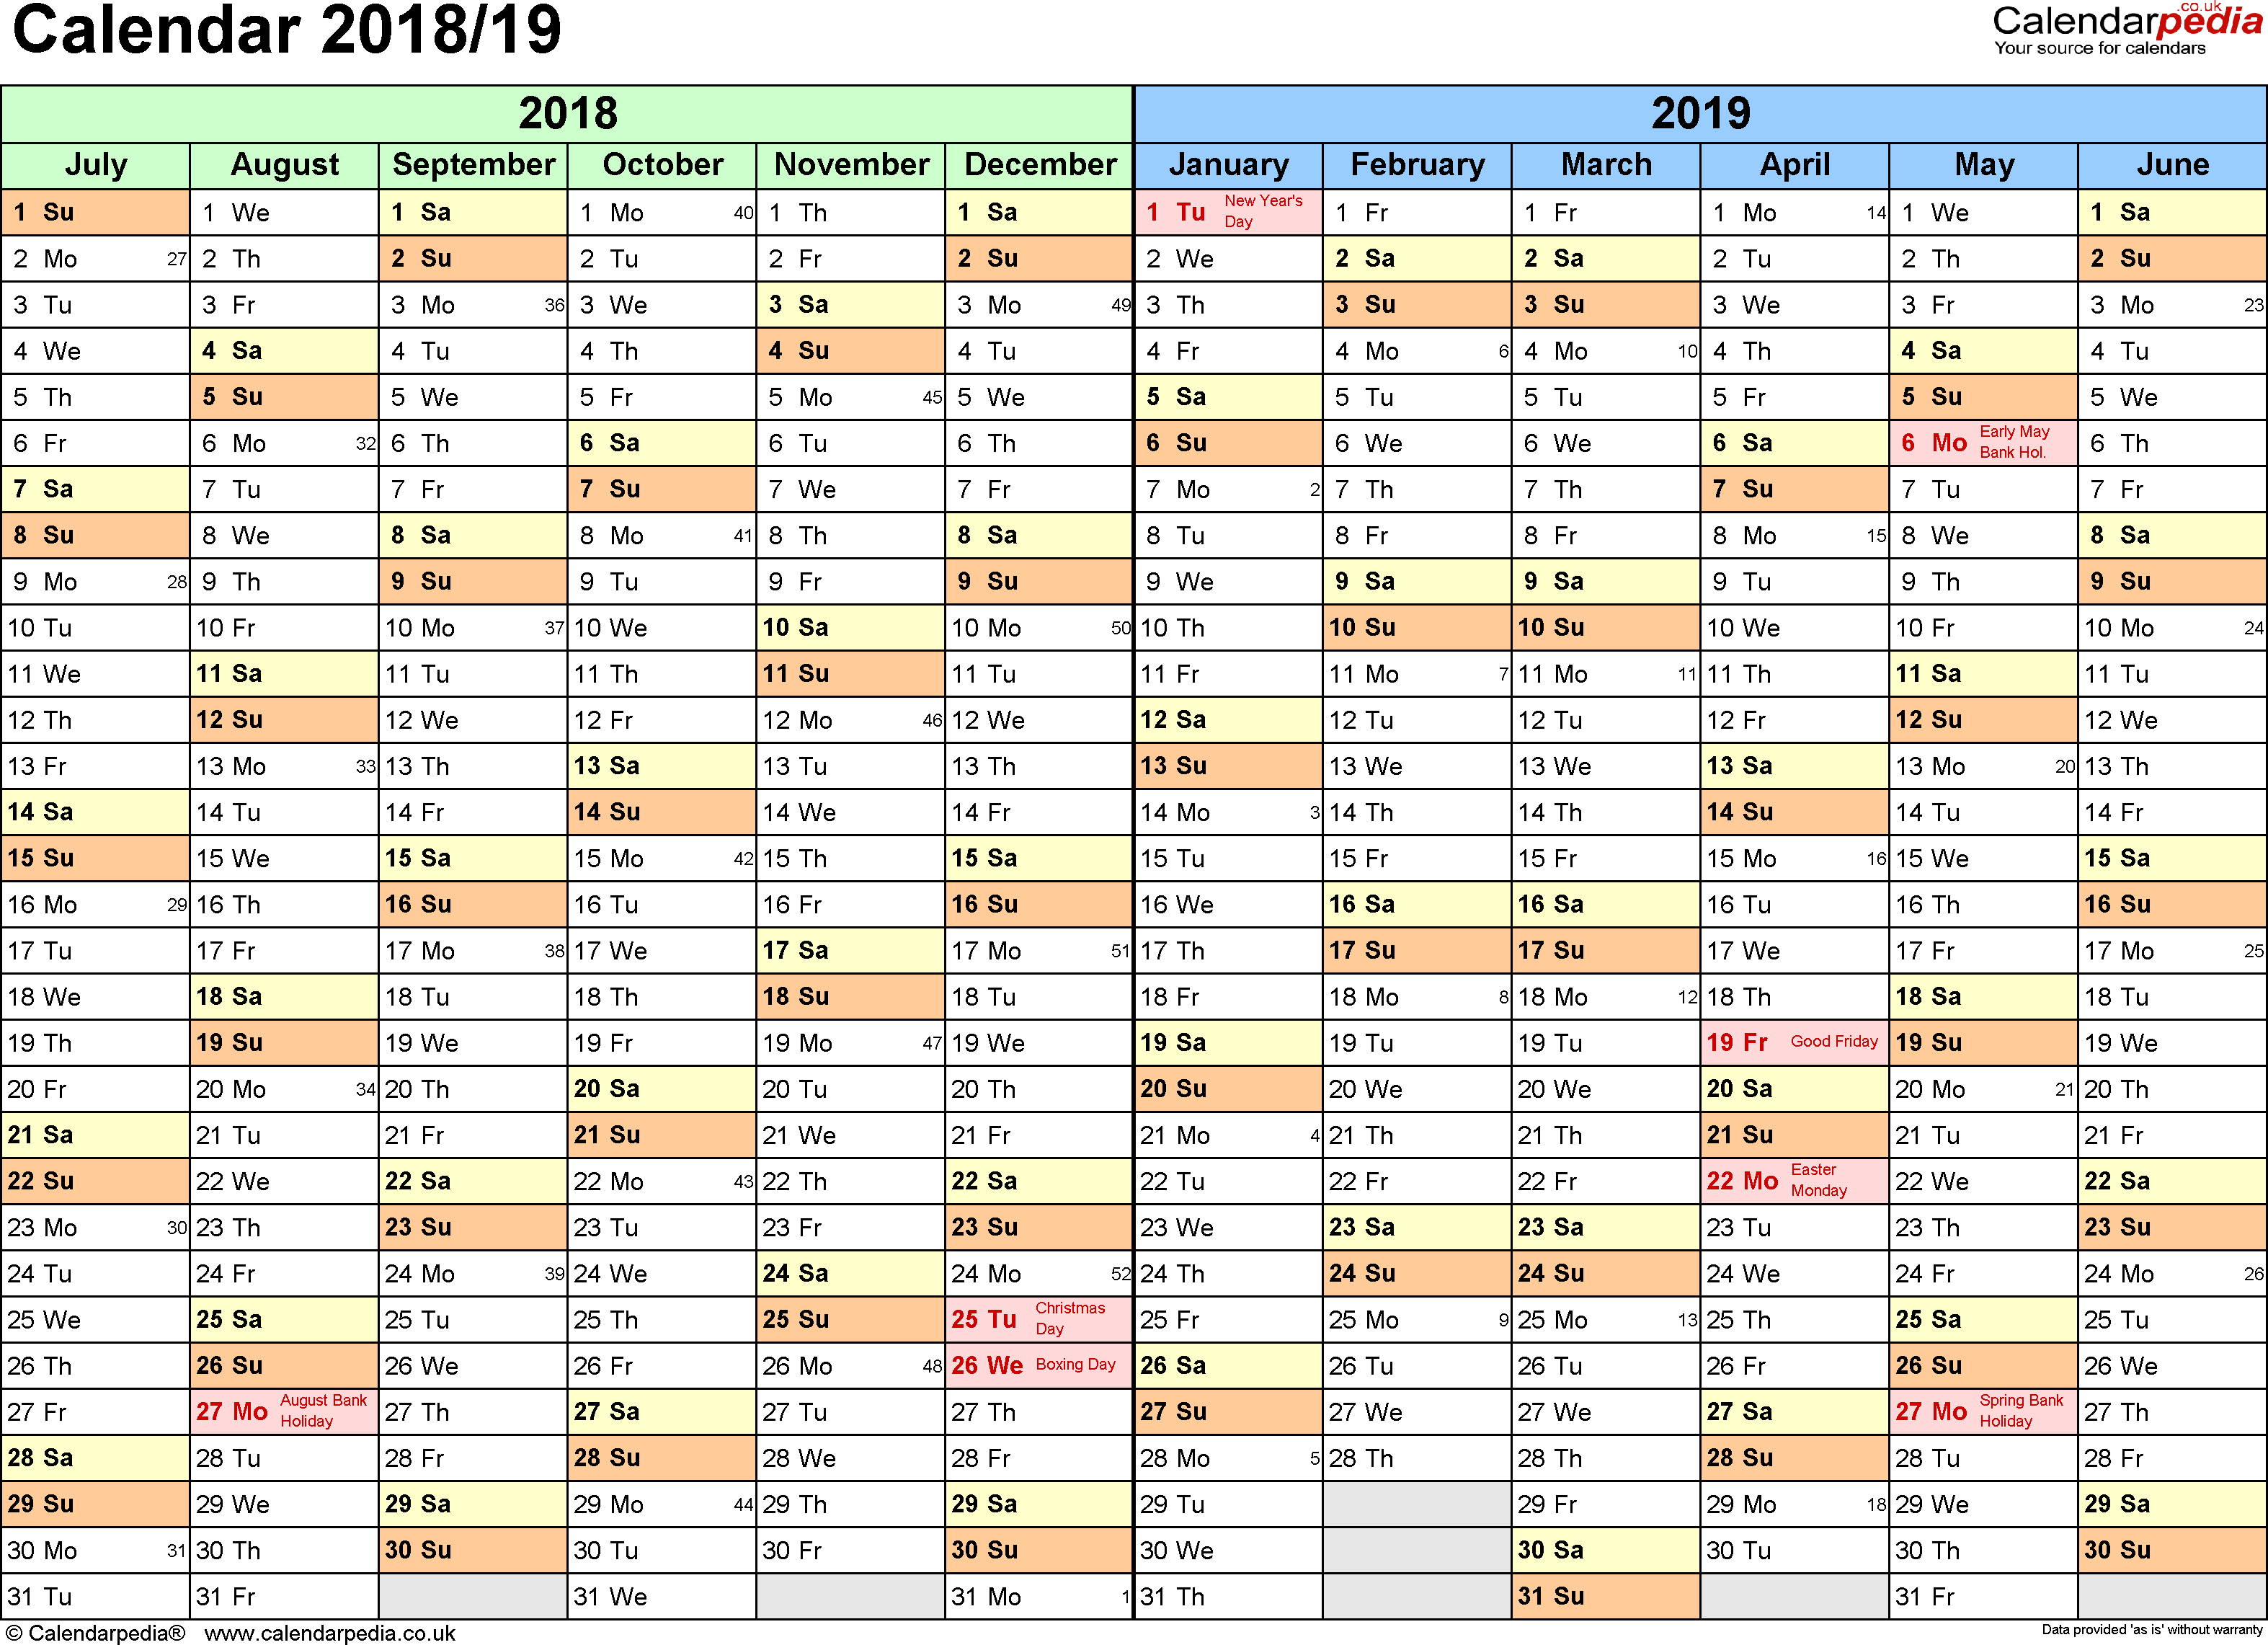 Download Template 1: PDF template for split year calendar 2018/2019 (landscape orientation, 1 page, A4)